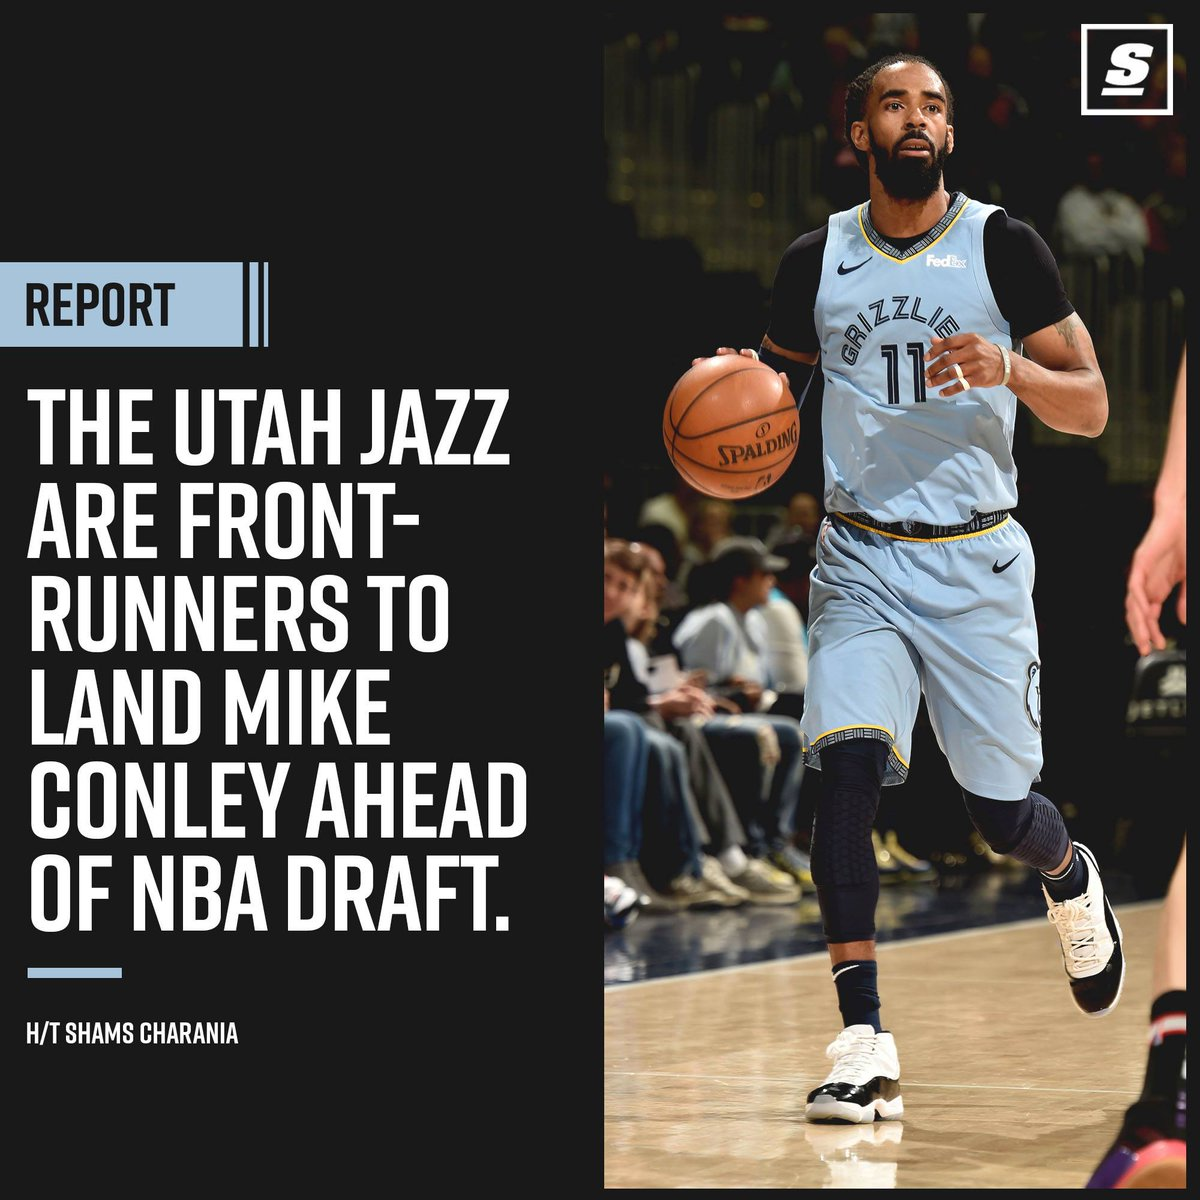 Report: Grizzlies 'intensifying' Conley trade talks, Jazz a front-runner | theScore.com